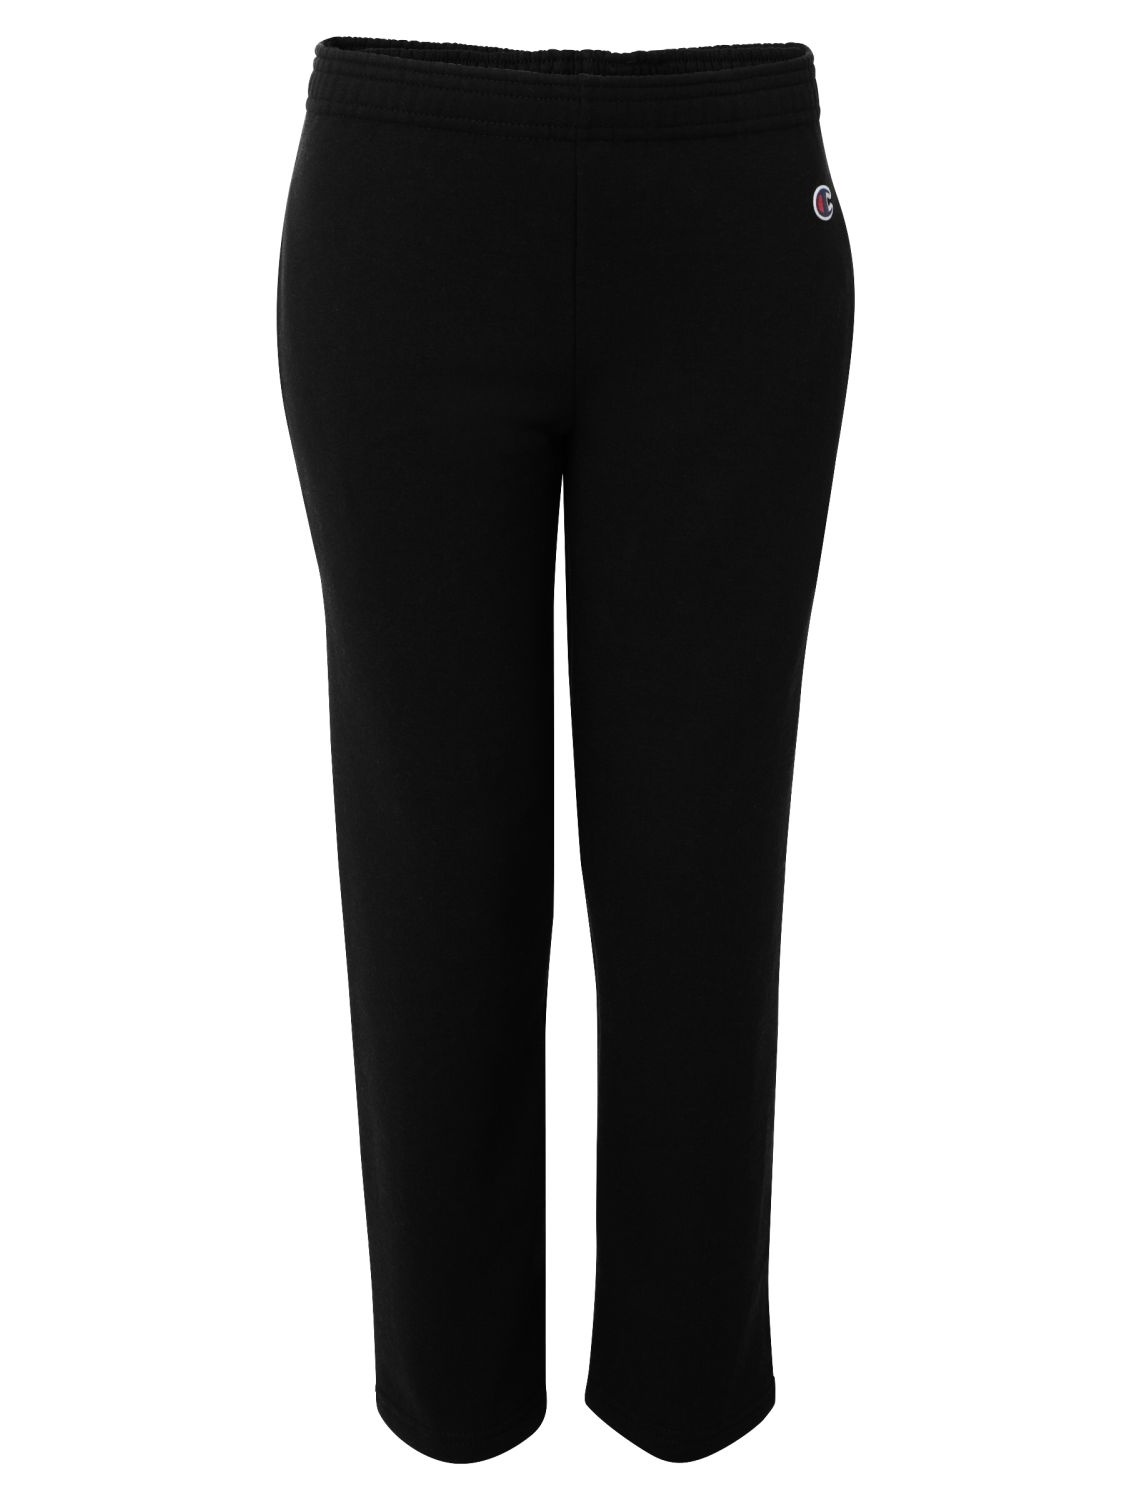 Champion P890 Double Dry Eco Youth Open Bottom Sweatpants with Pockets